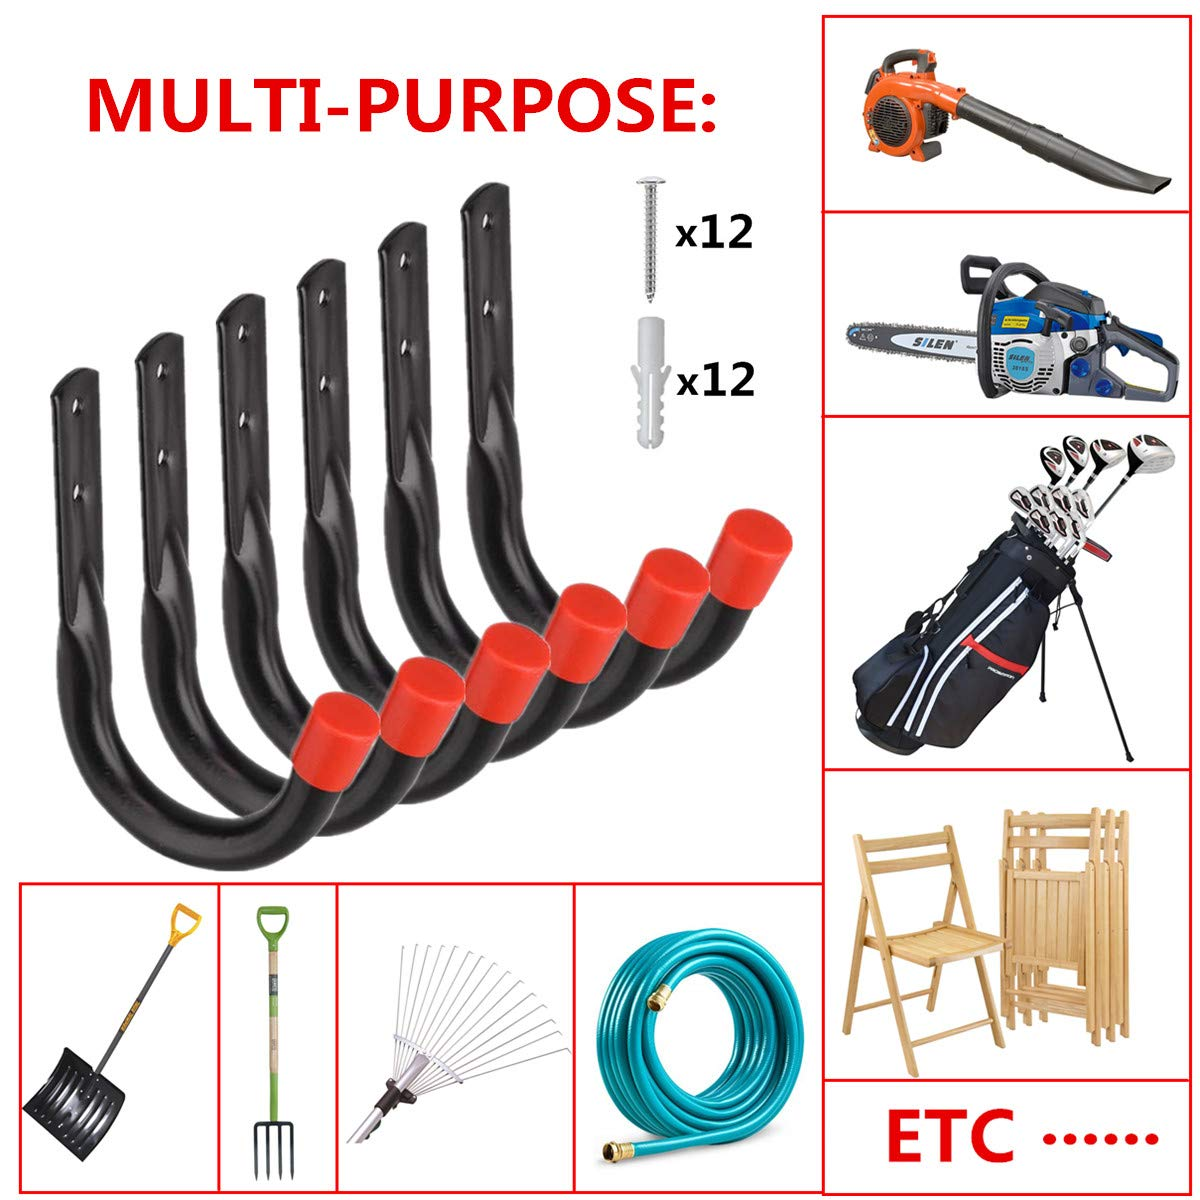 Black Heavy Duty Garage Utility U Hooks,Wall Mount Garage Hanging Storage Hook for Ladders Bicycle and Tools 6 Pack